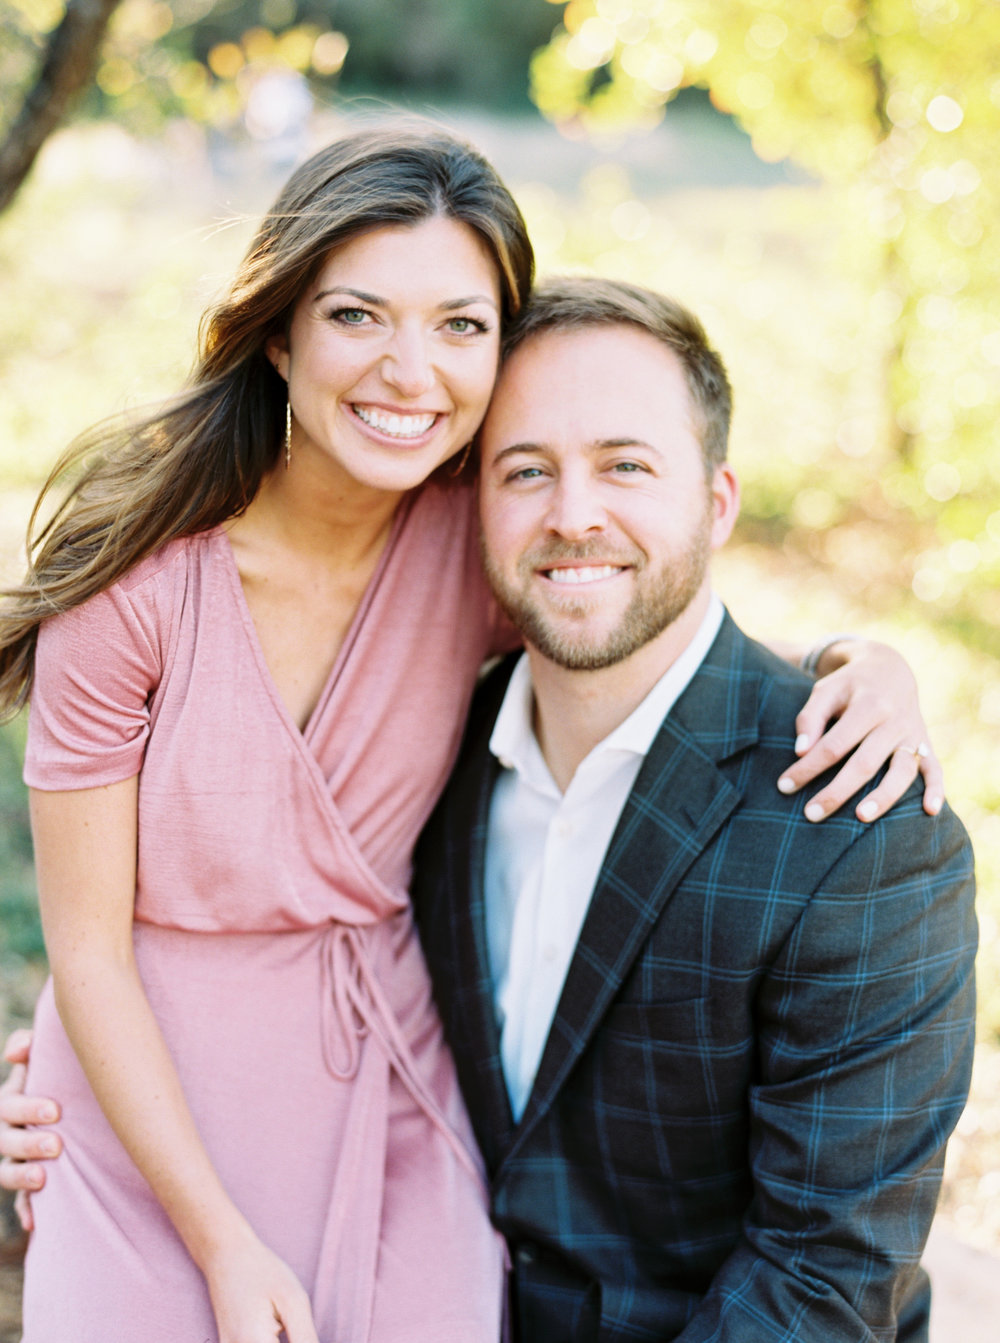 Engagement Session Outfits-141.jpg